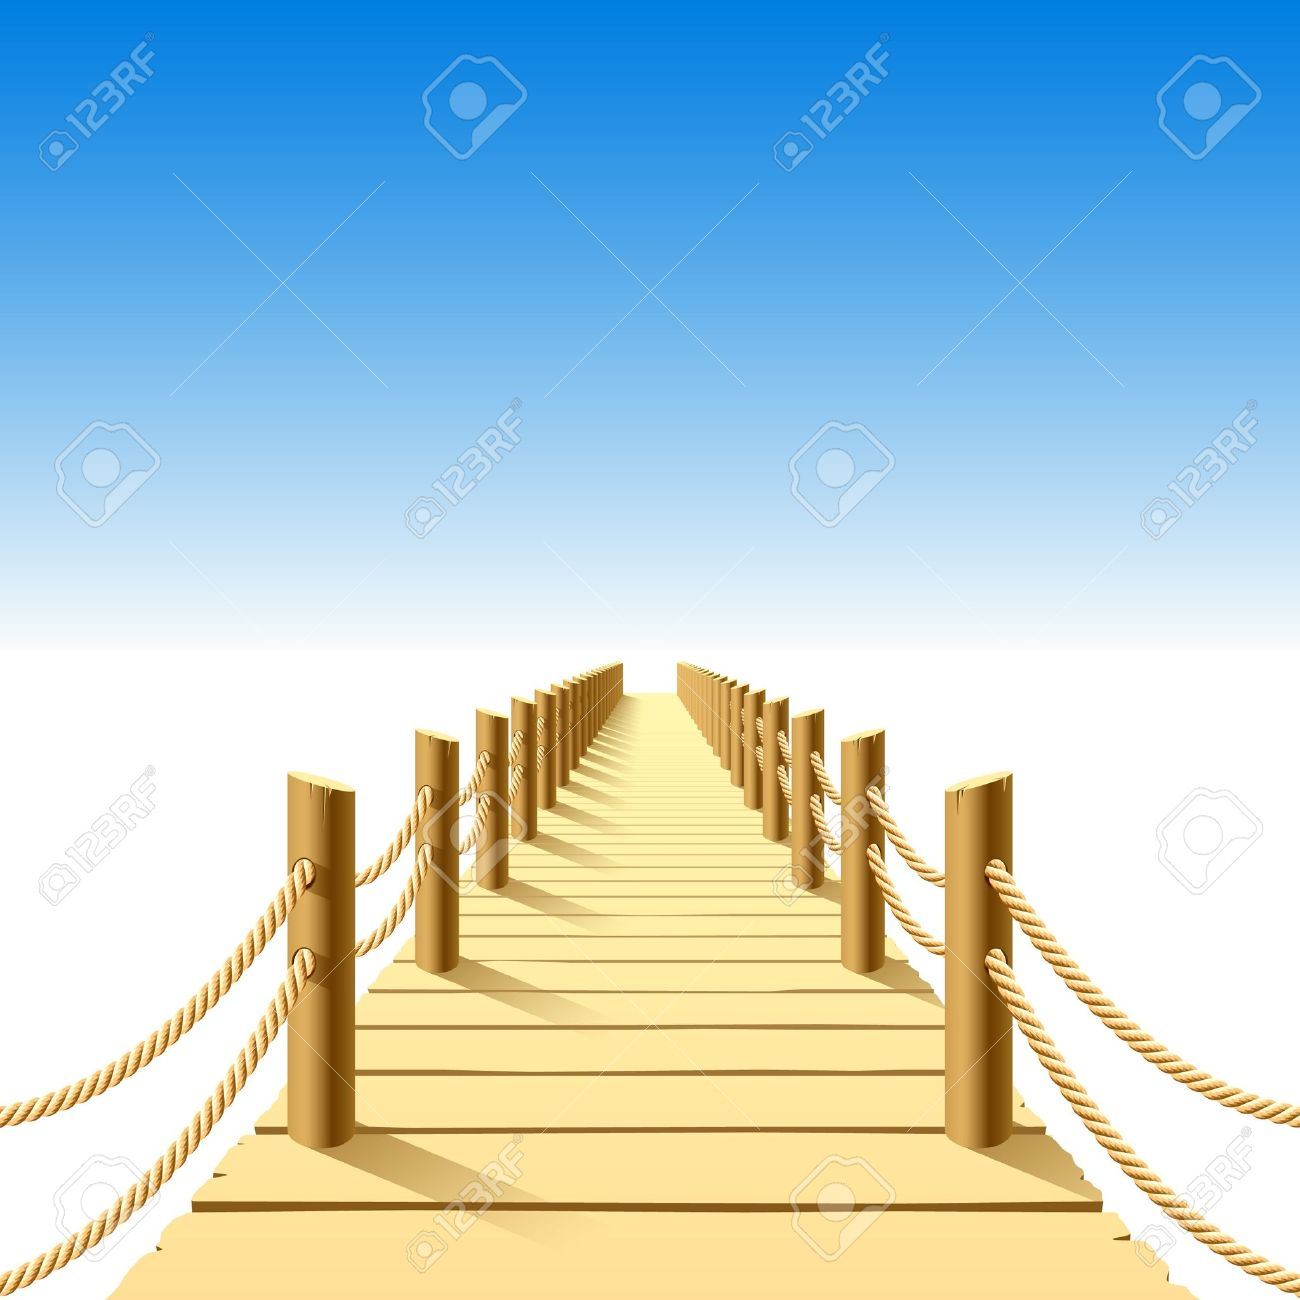 Pier clipart Wood Download Pier Wood Pier